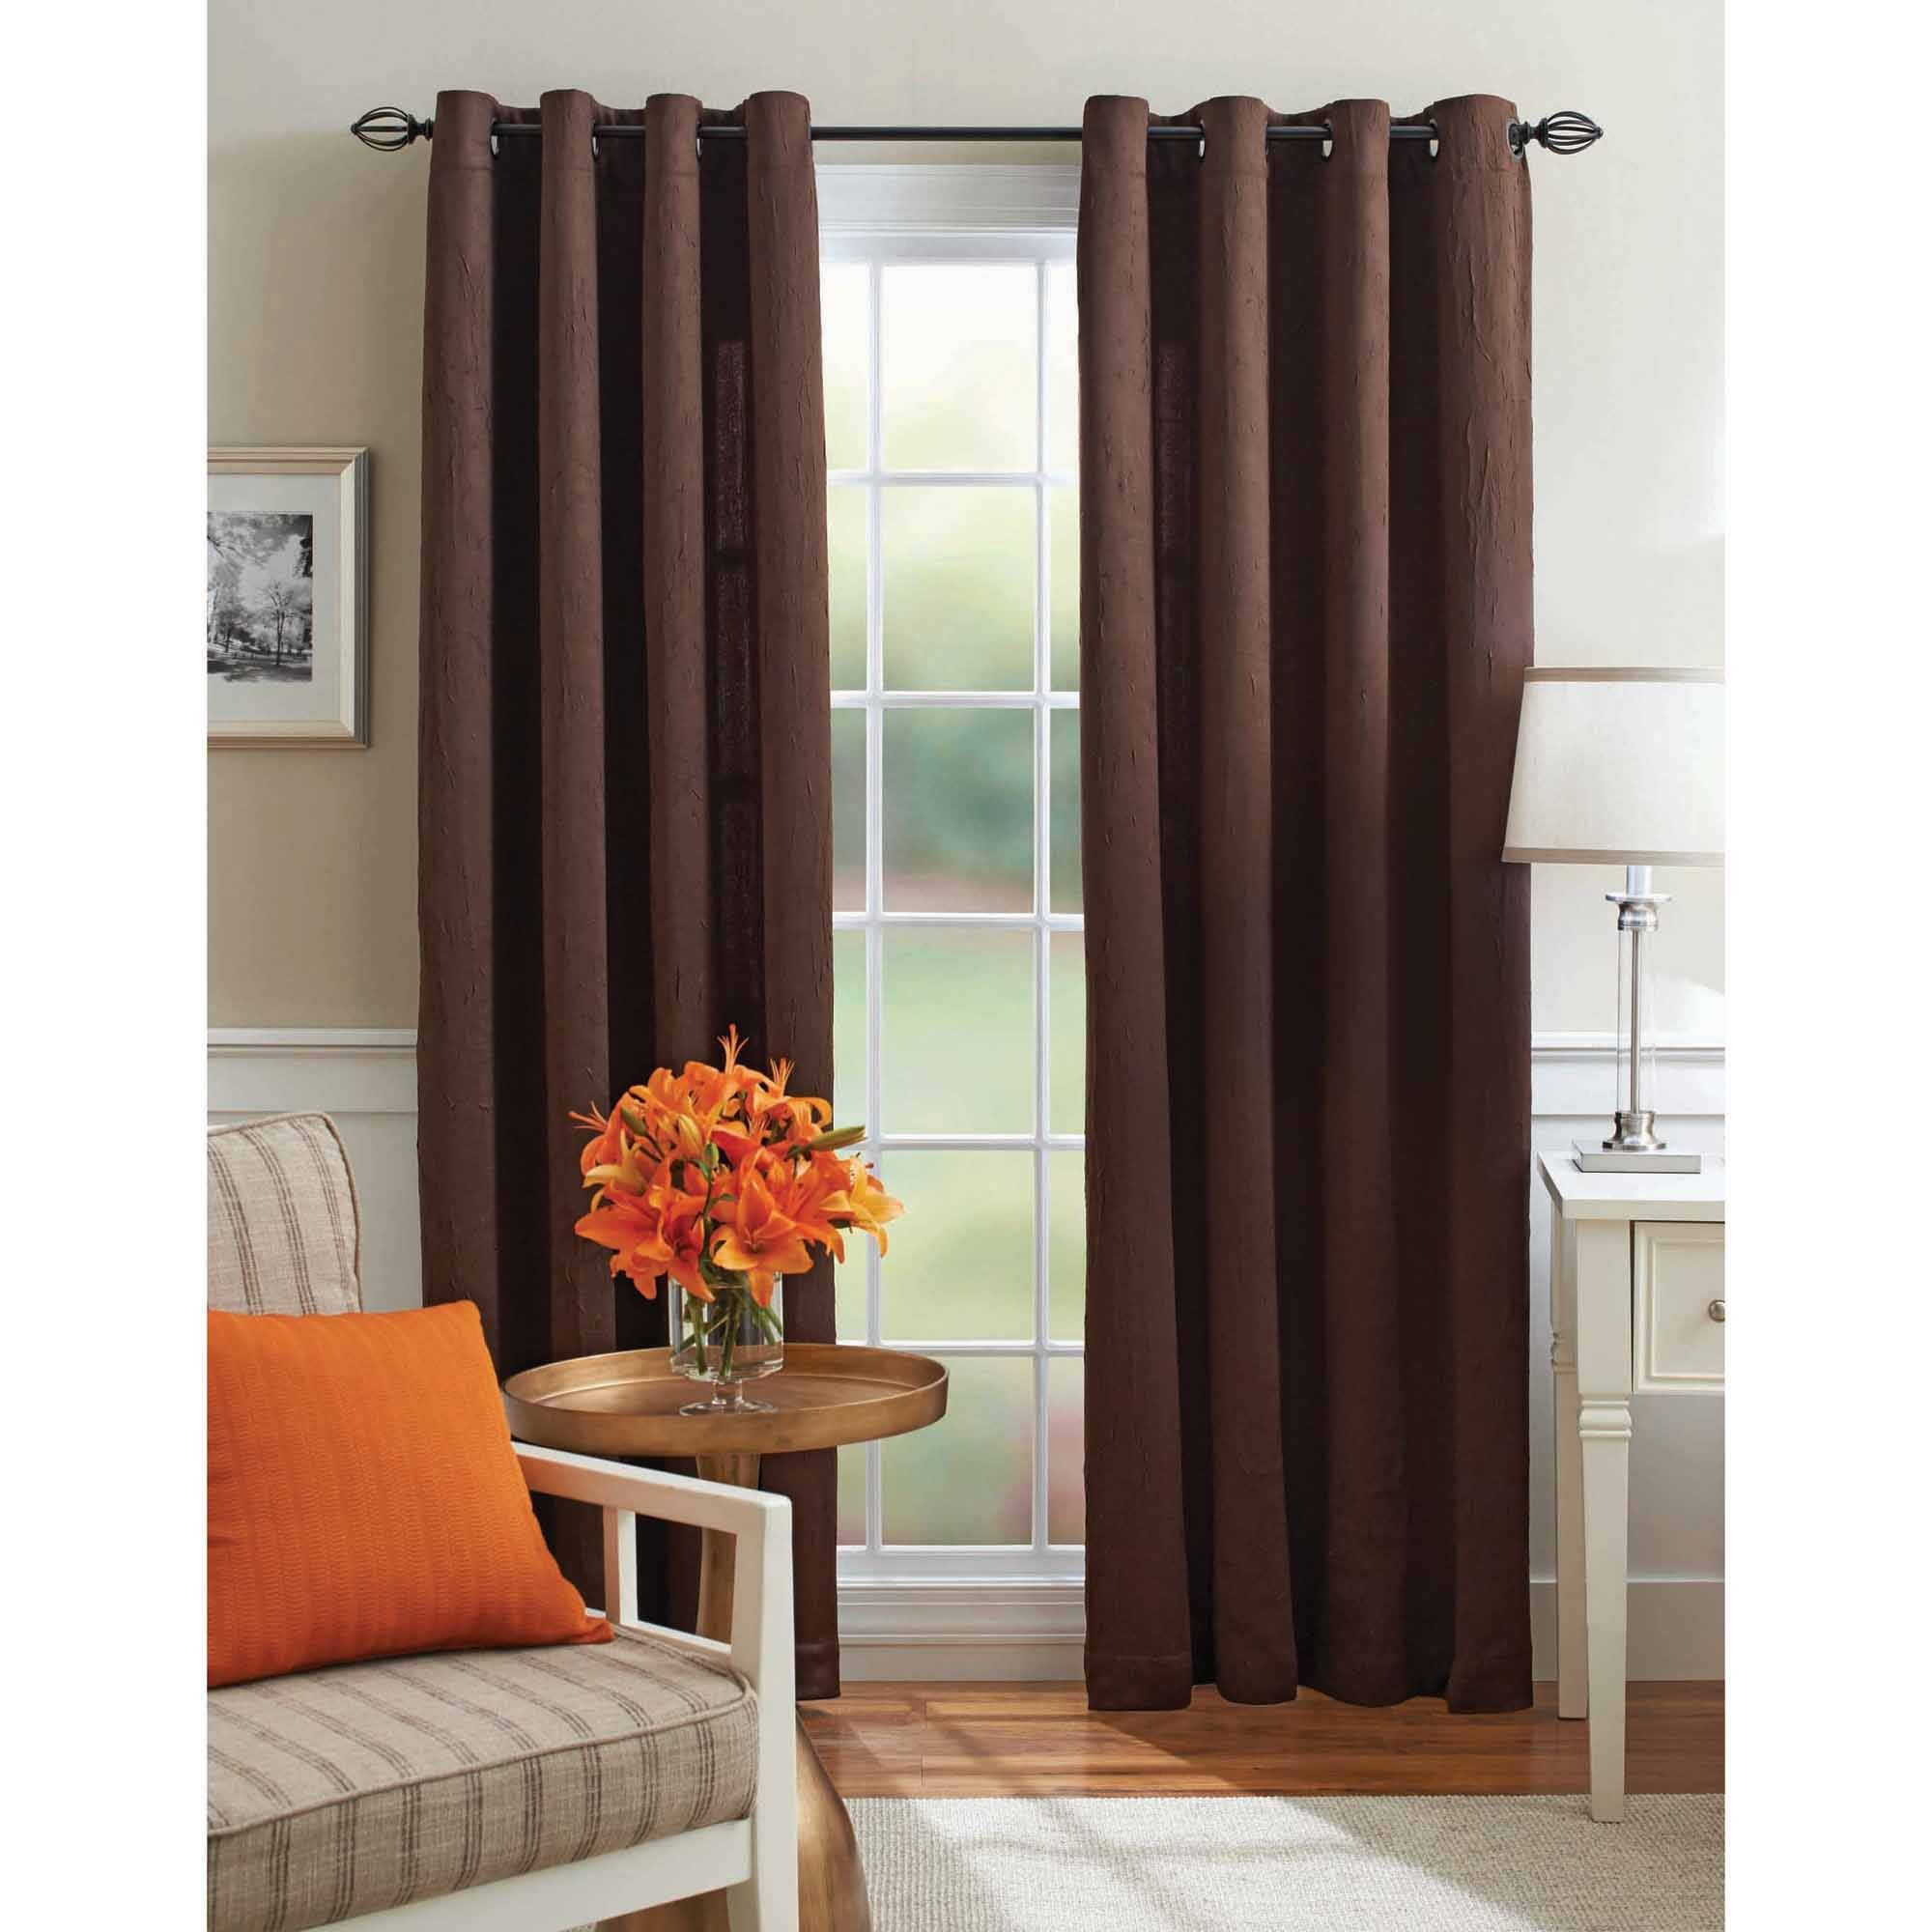 Room Darkening Curtains Walmart Regarding Faux Suede Curtain Panels (Image 19 of 25)